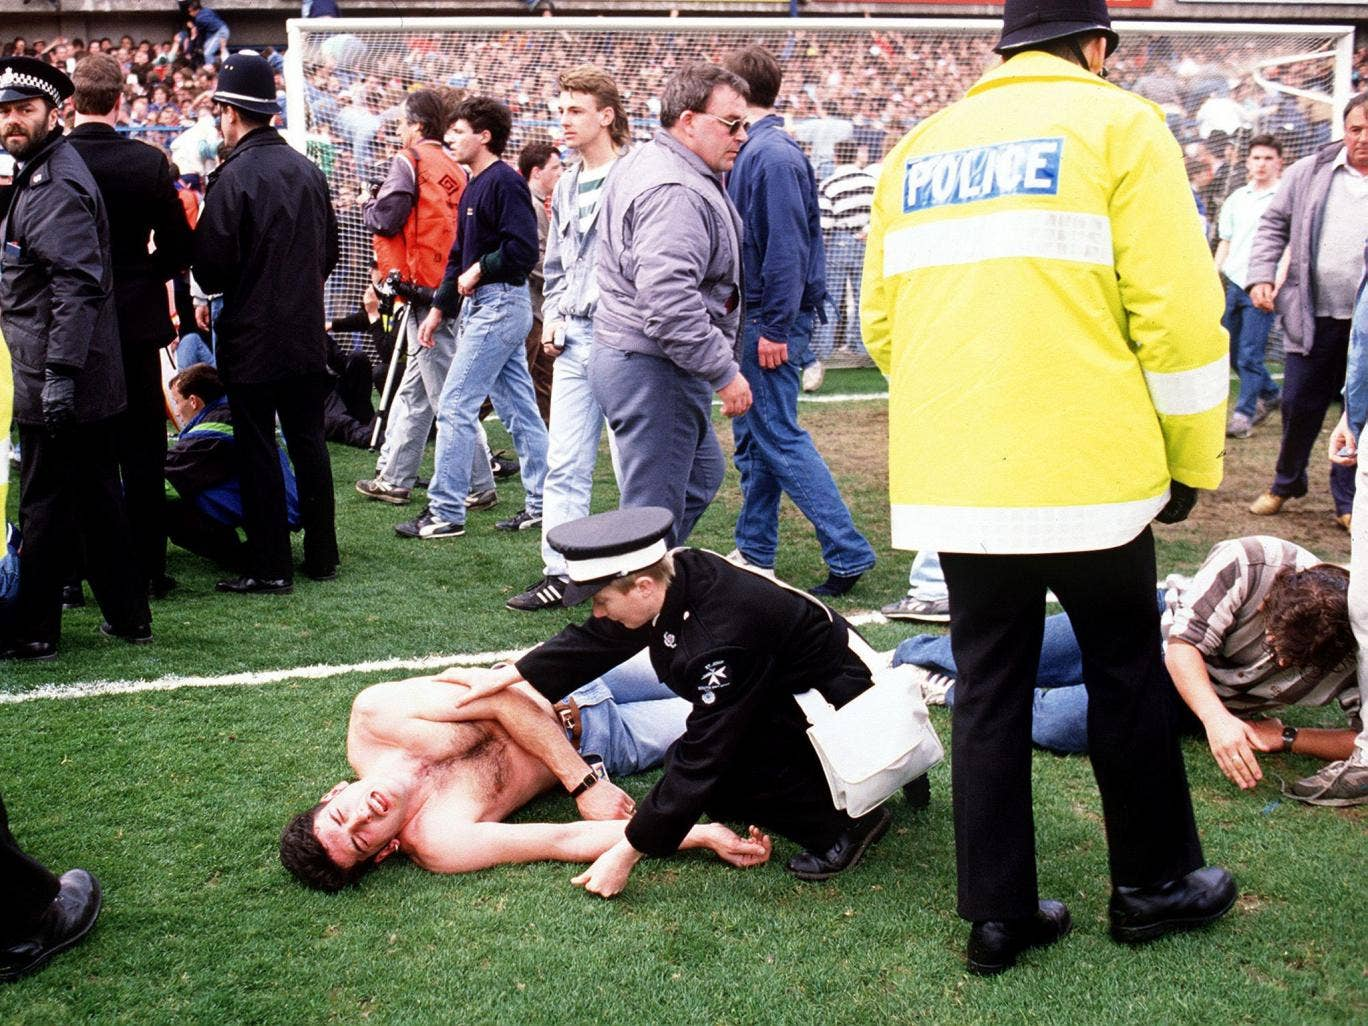 The IPCC is investigating accusations the police orchestrated a major cover-up of the Hillsborough disaster